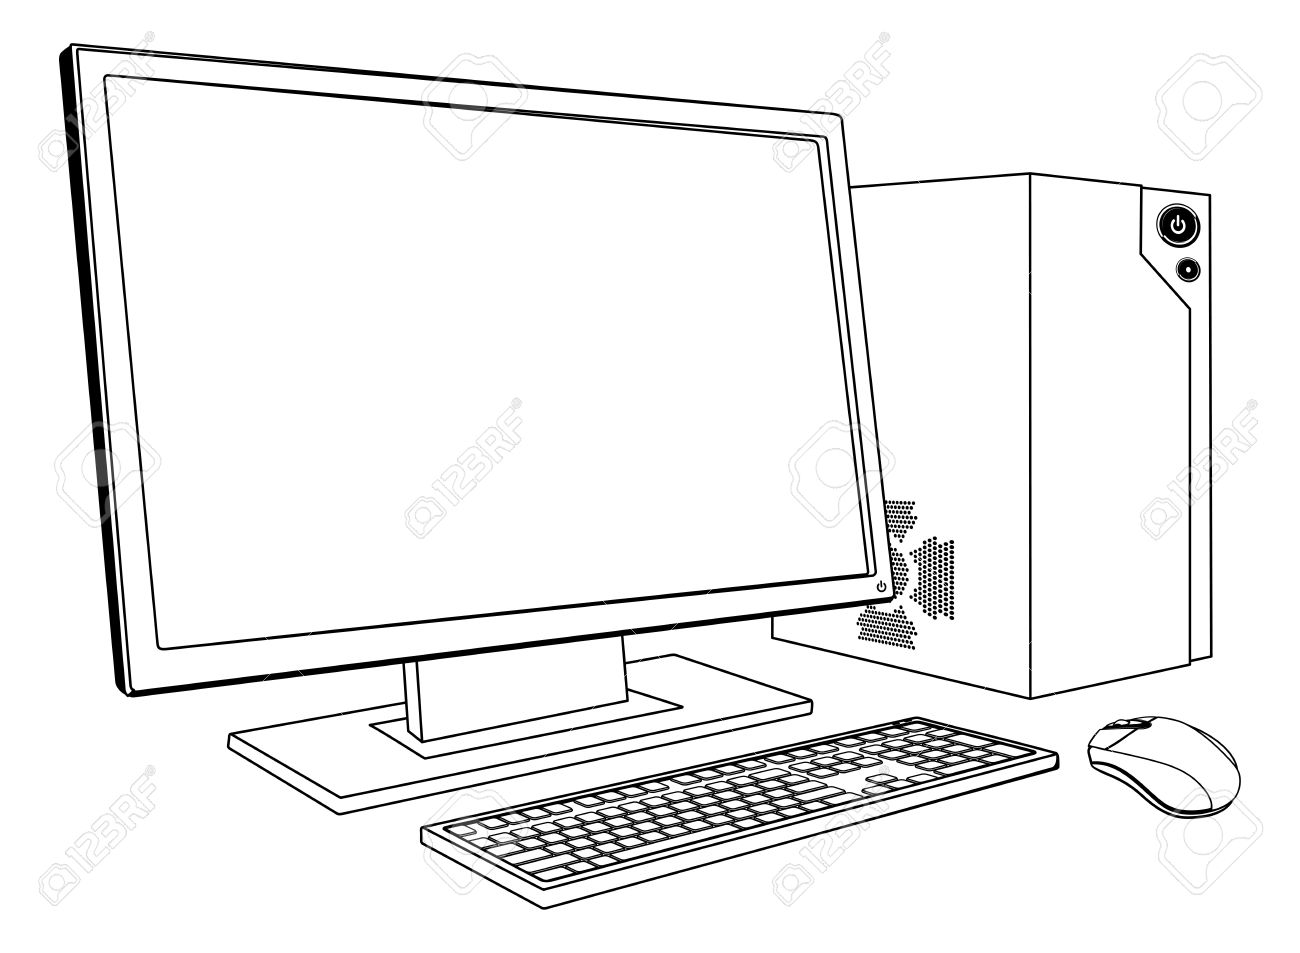 Computer Clipart Black And White 3 Clipart Station